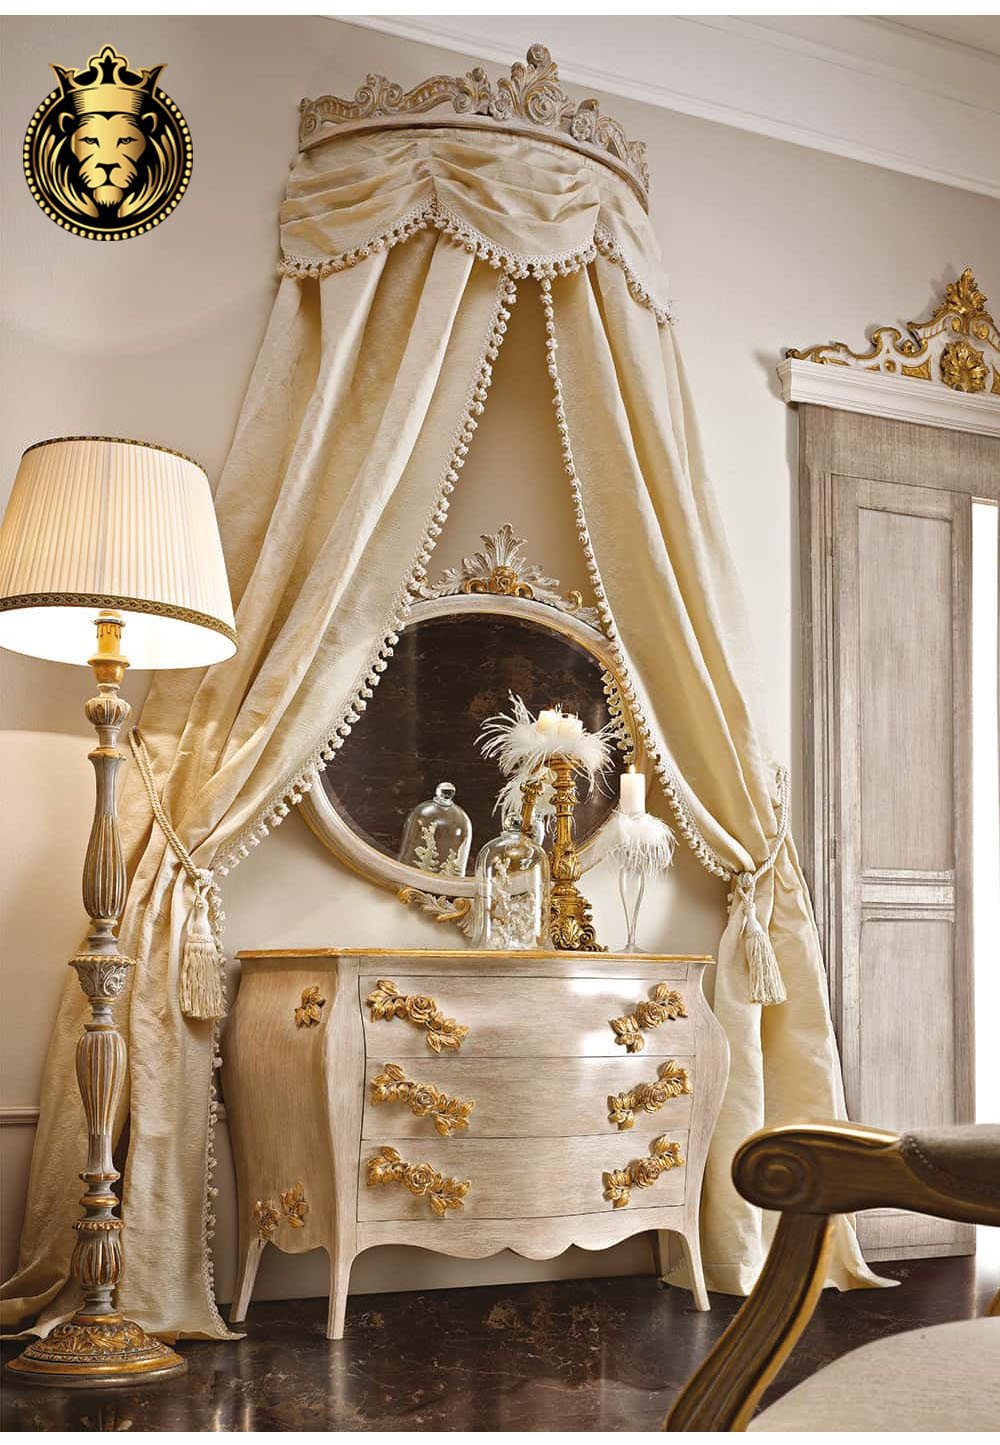 Queen Jhessy Royal White and Gold Bedroom Furniture